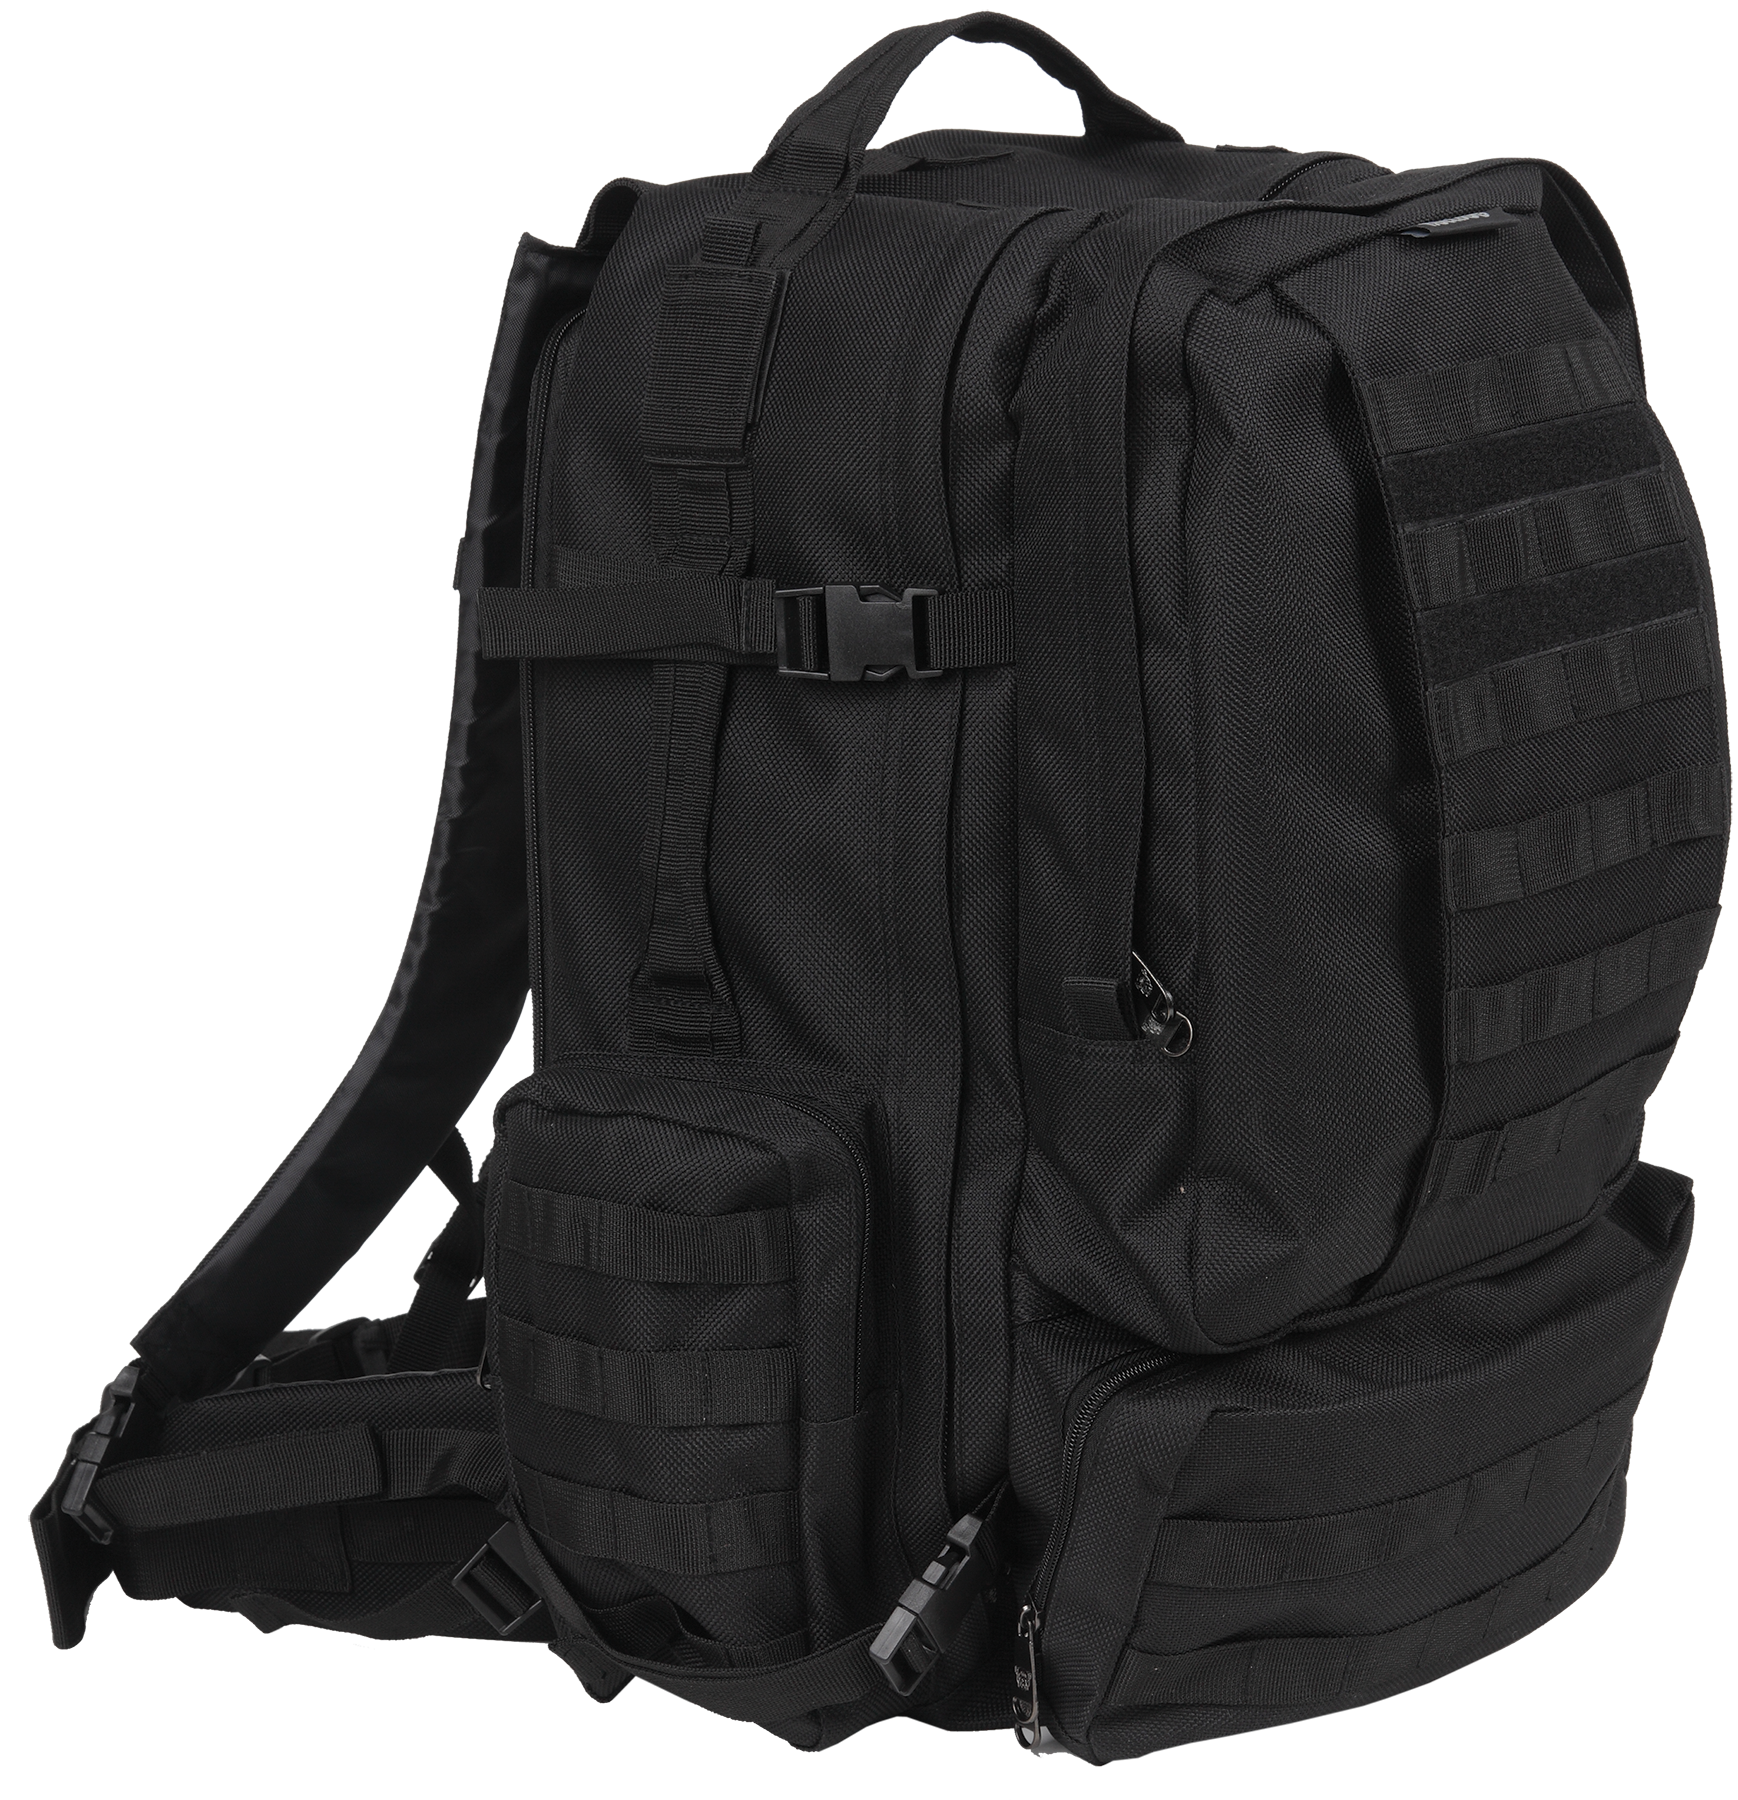 Bulldog BD412 Extreme Modular MOLLE Assault Backpack Tactical Nylon 20